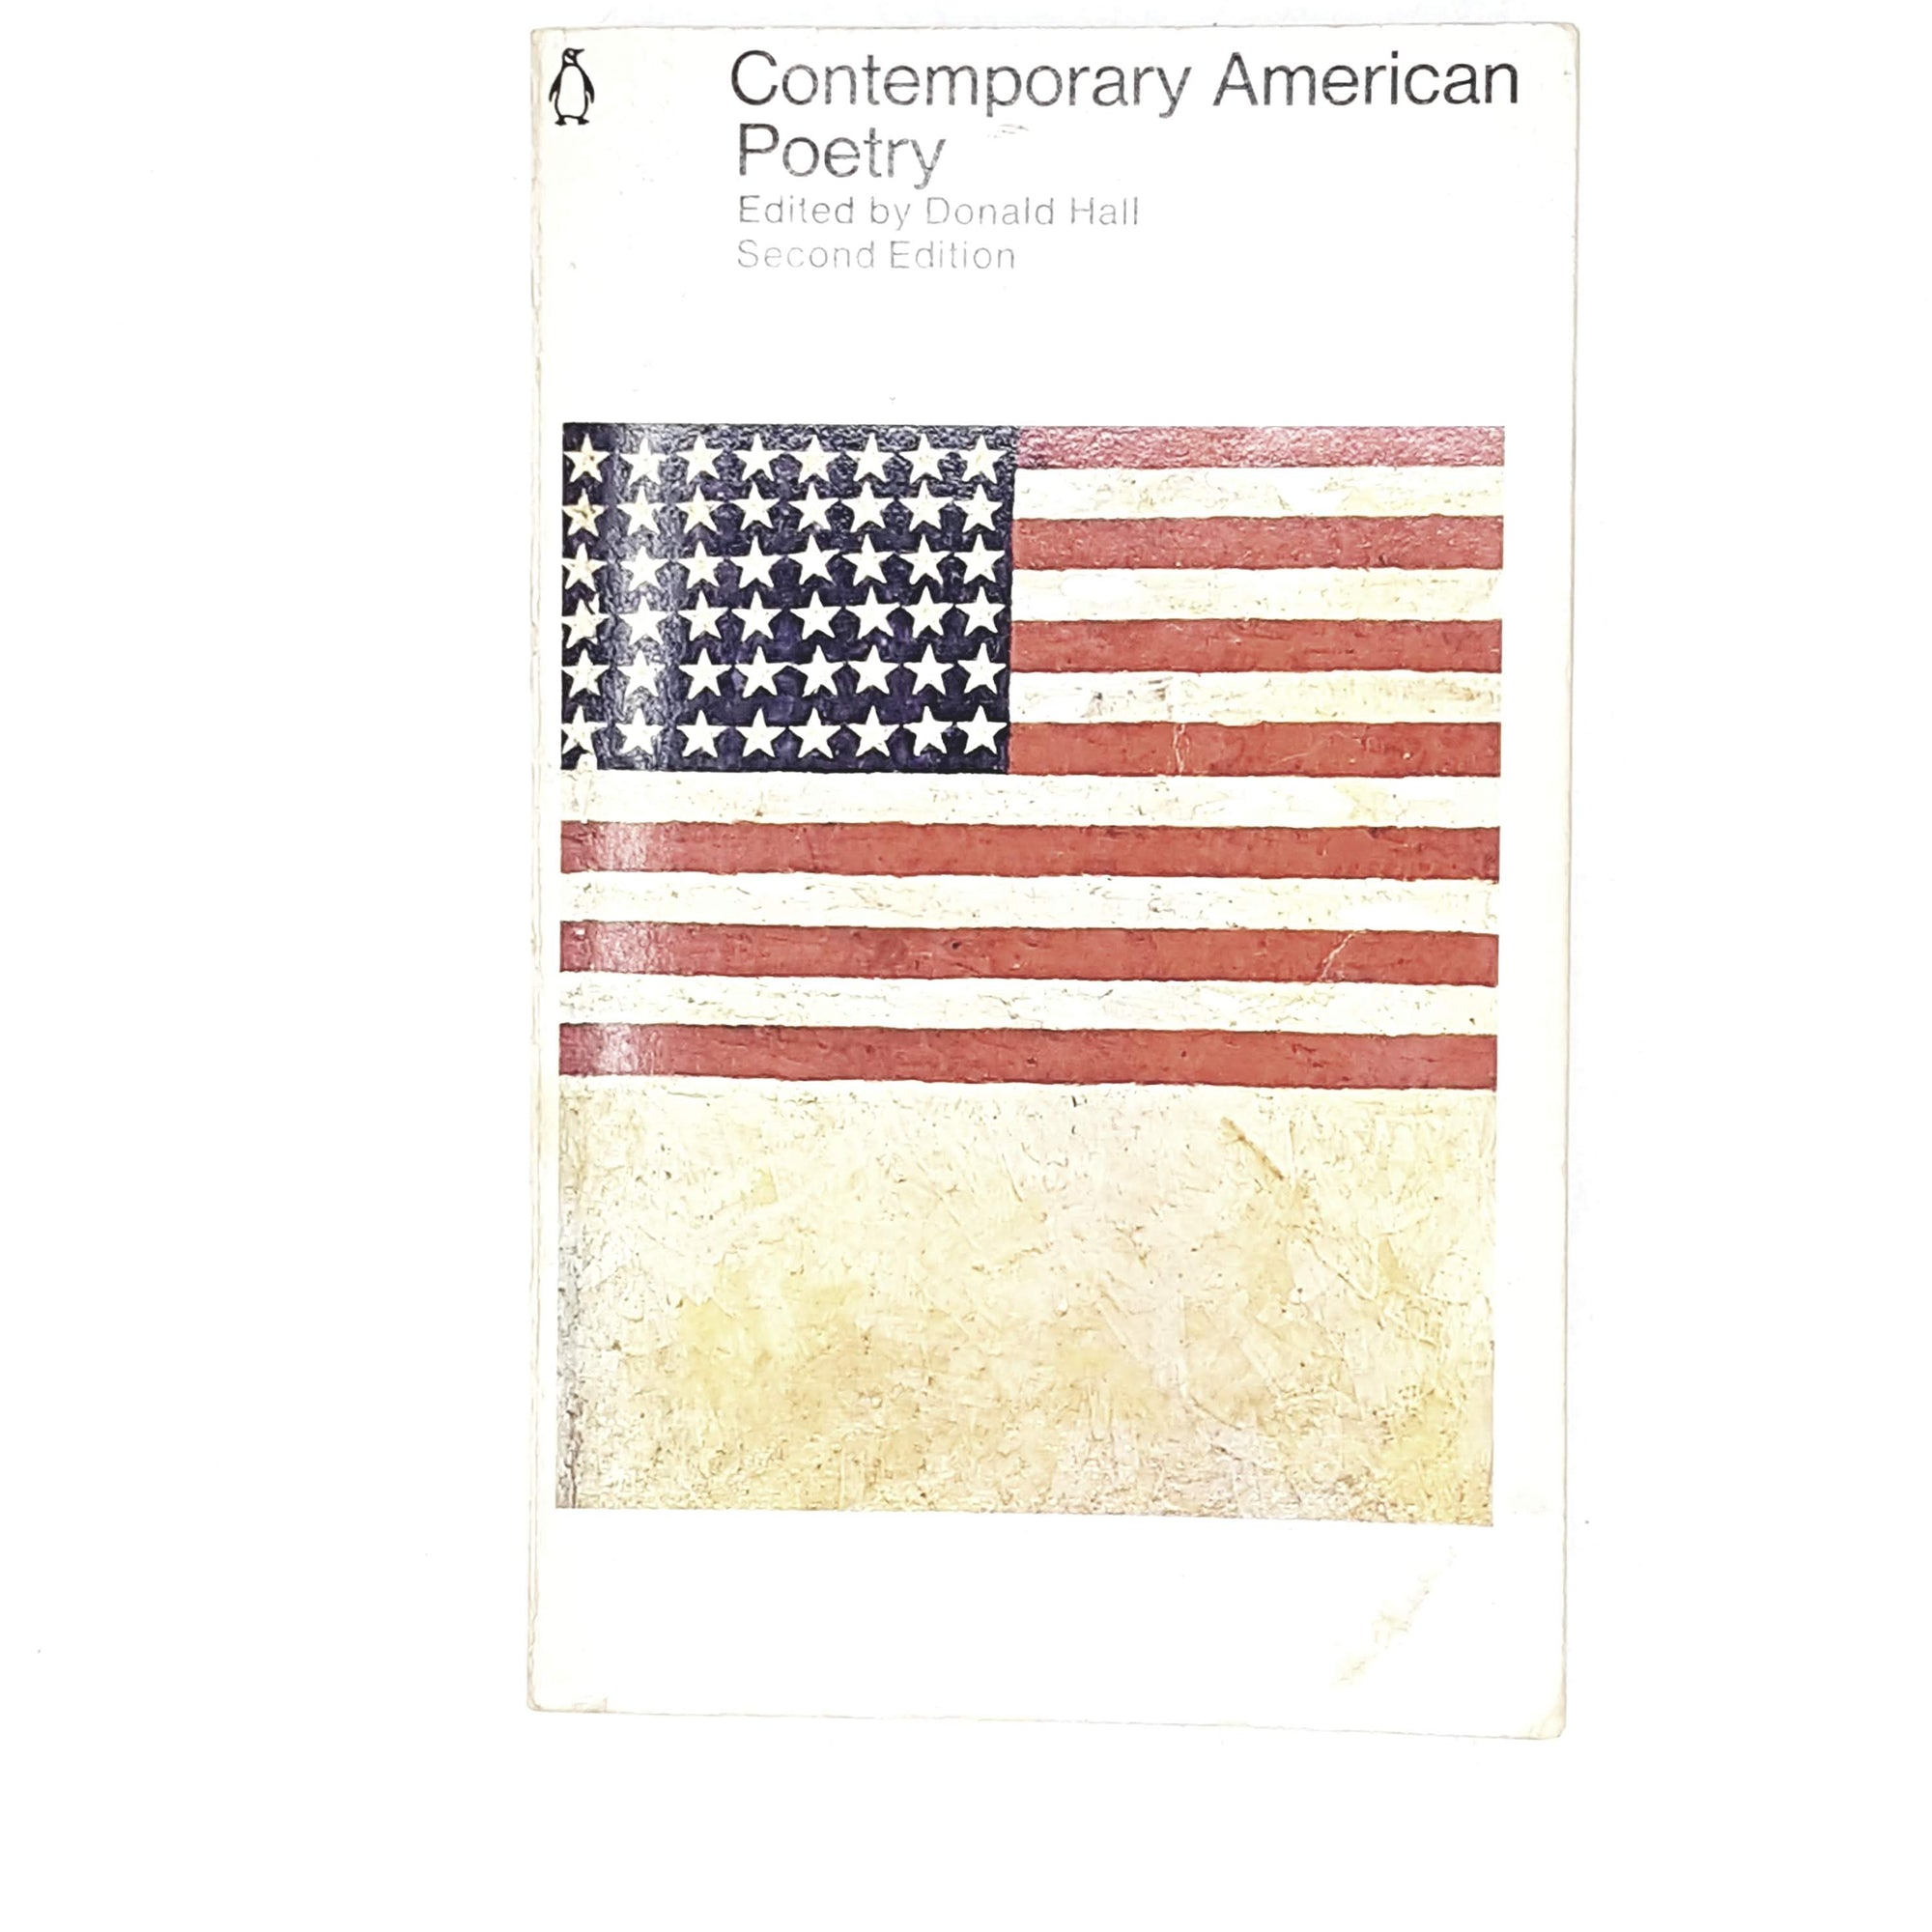 Vintage Penguin Contemporary American Poetry 1974 - 1977